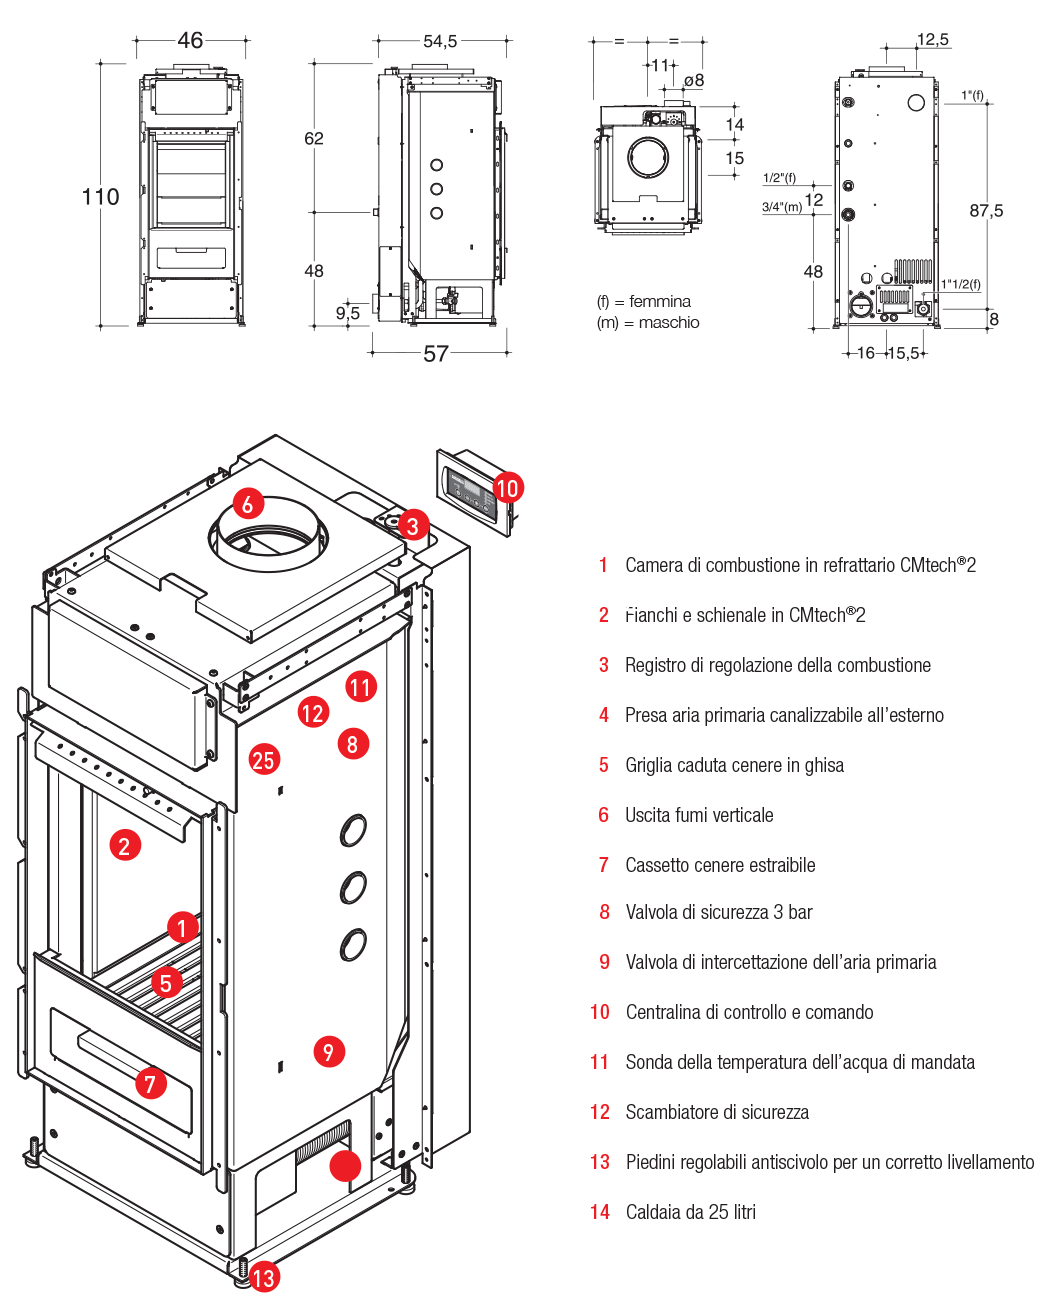 wood stove for water heating